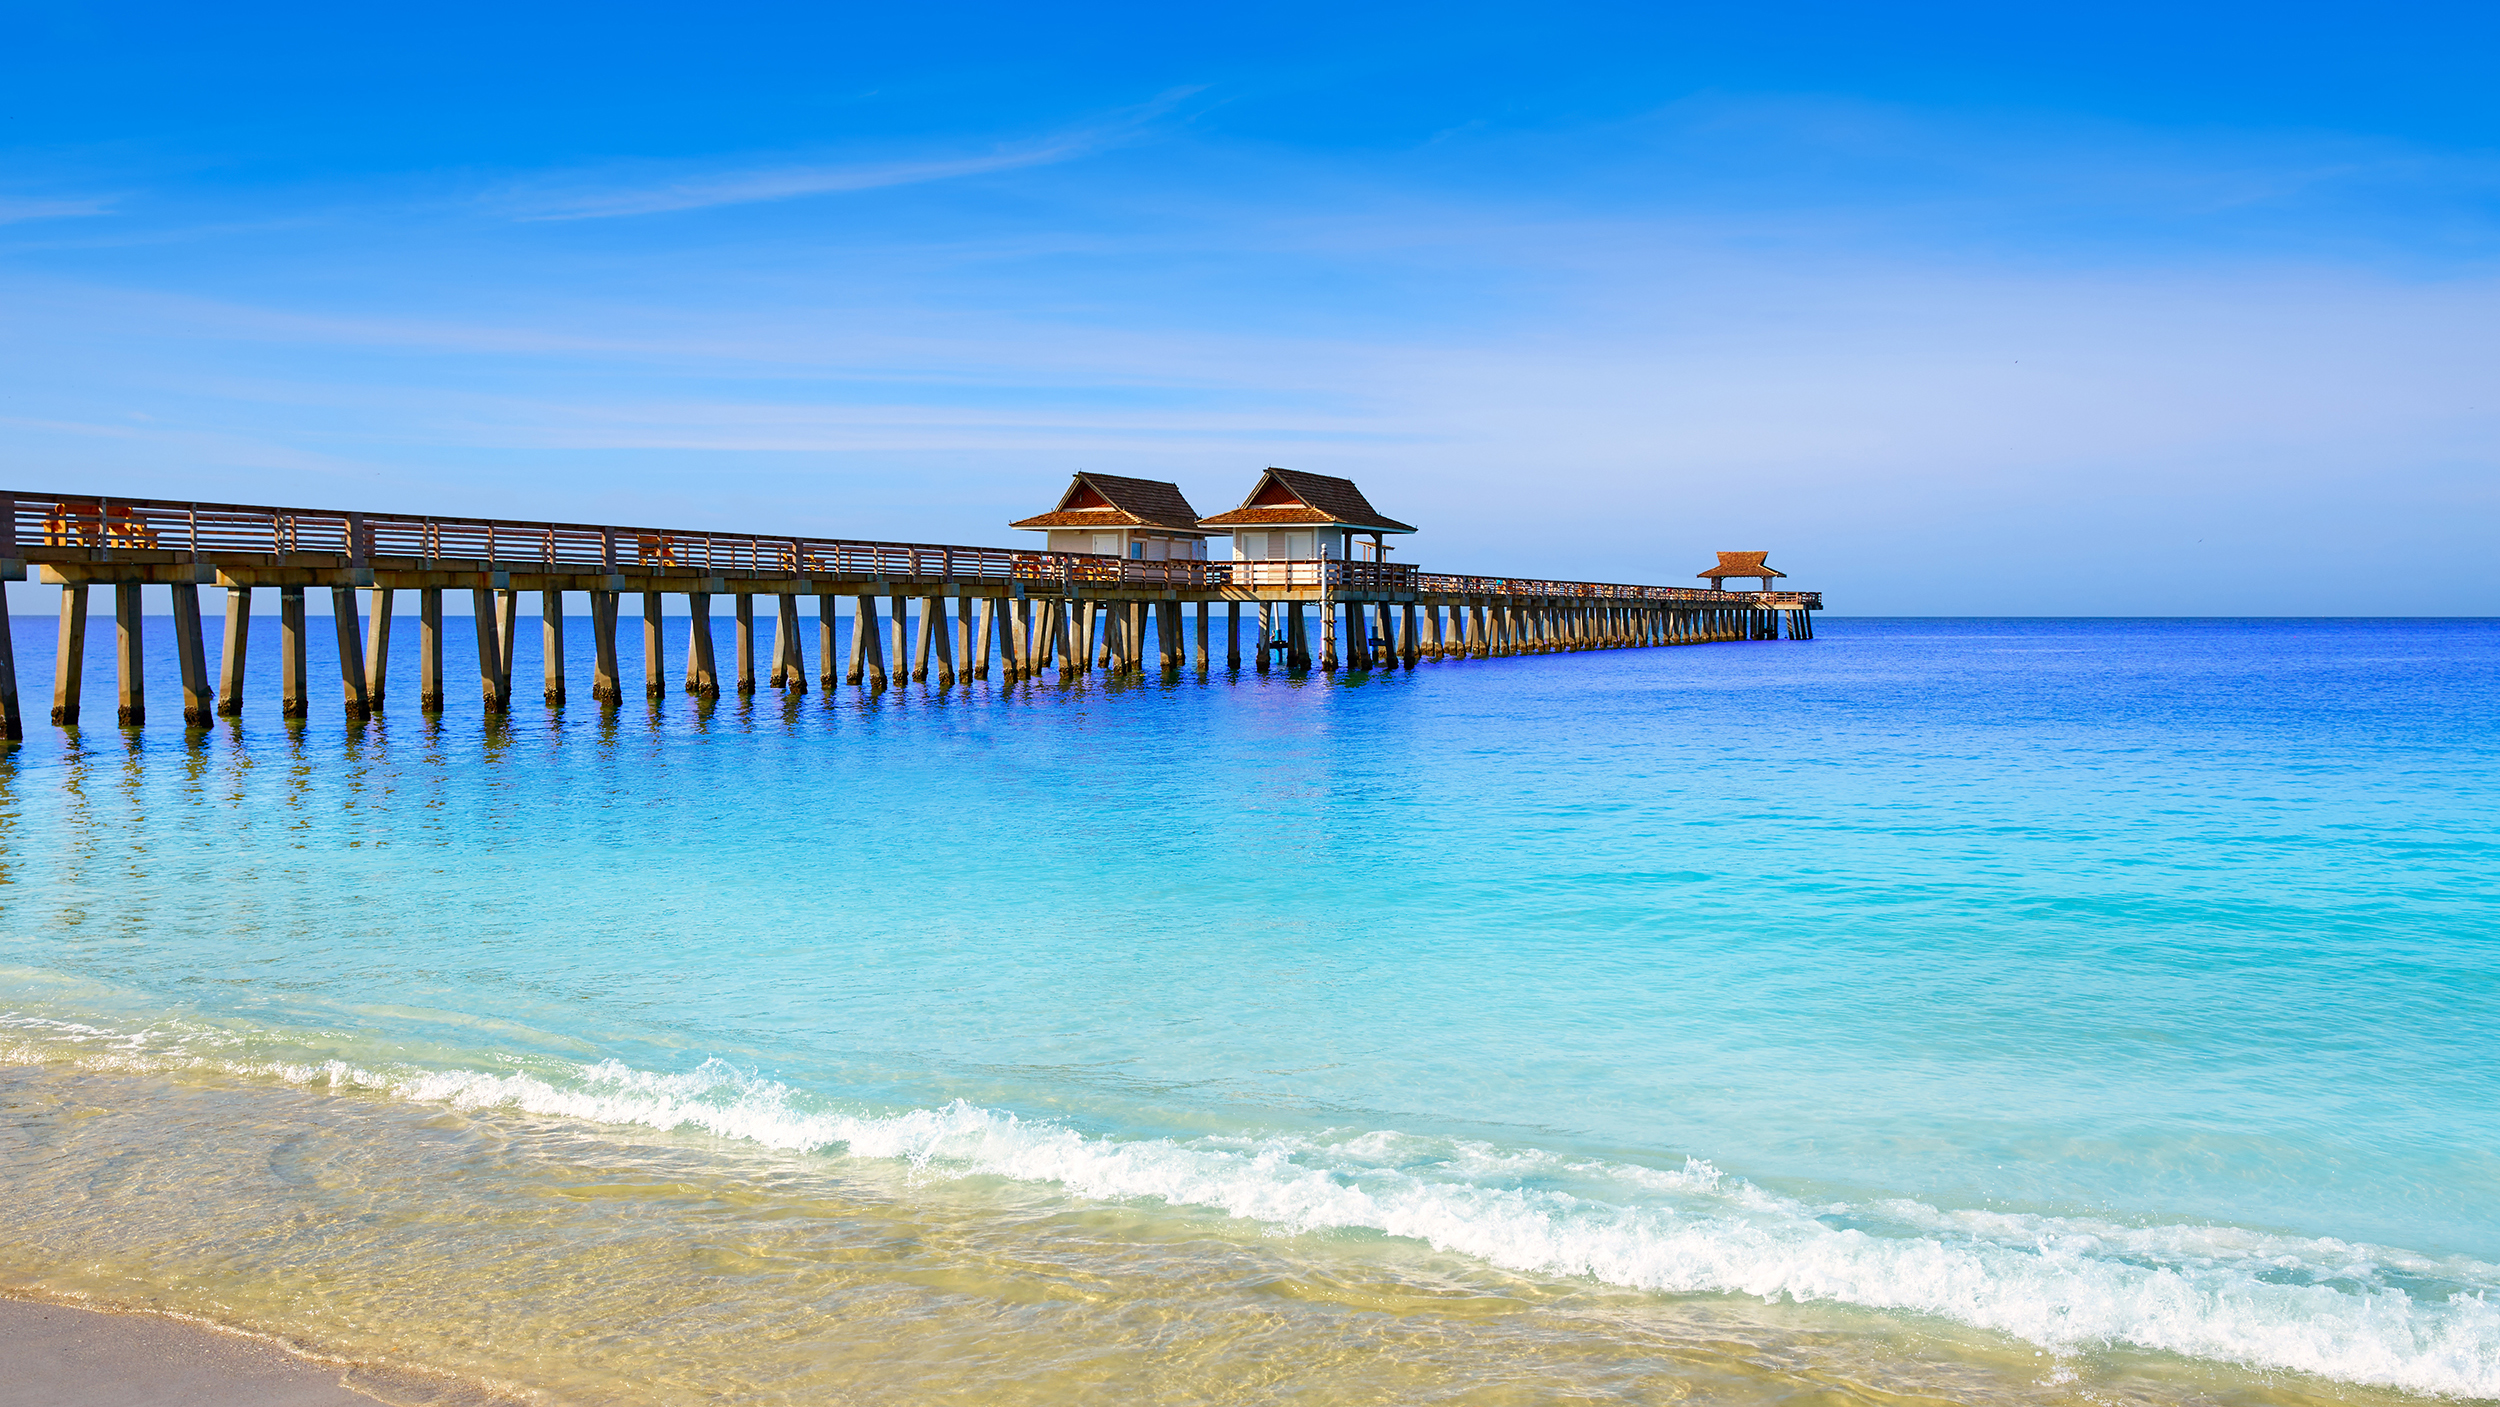 For The Nd Year In A Row Naples Florida Is The Healthiest City - Florida naples